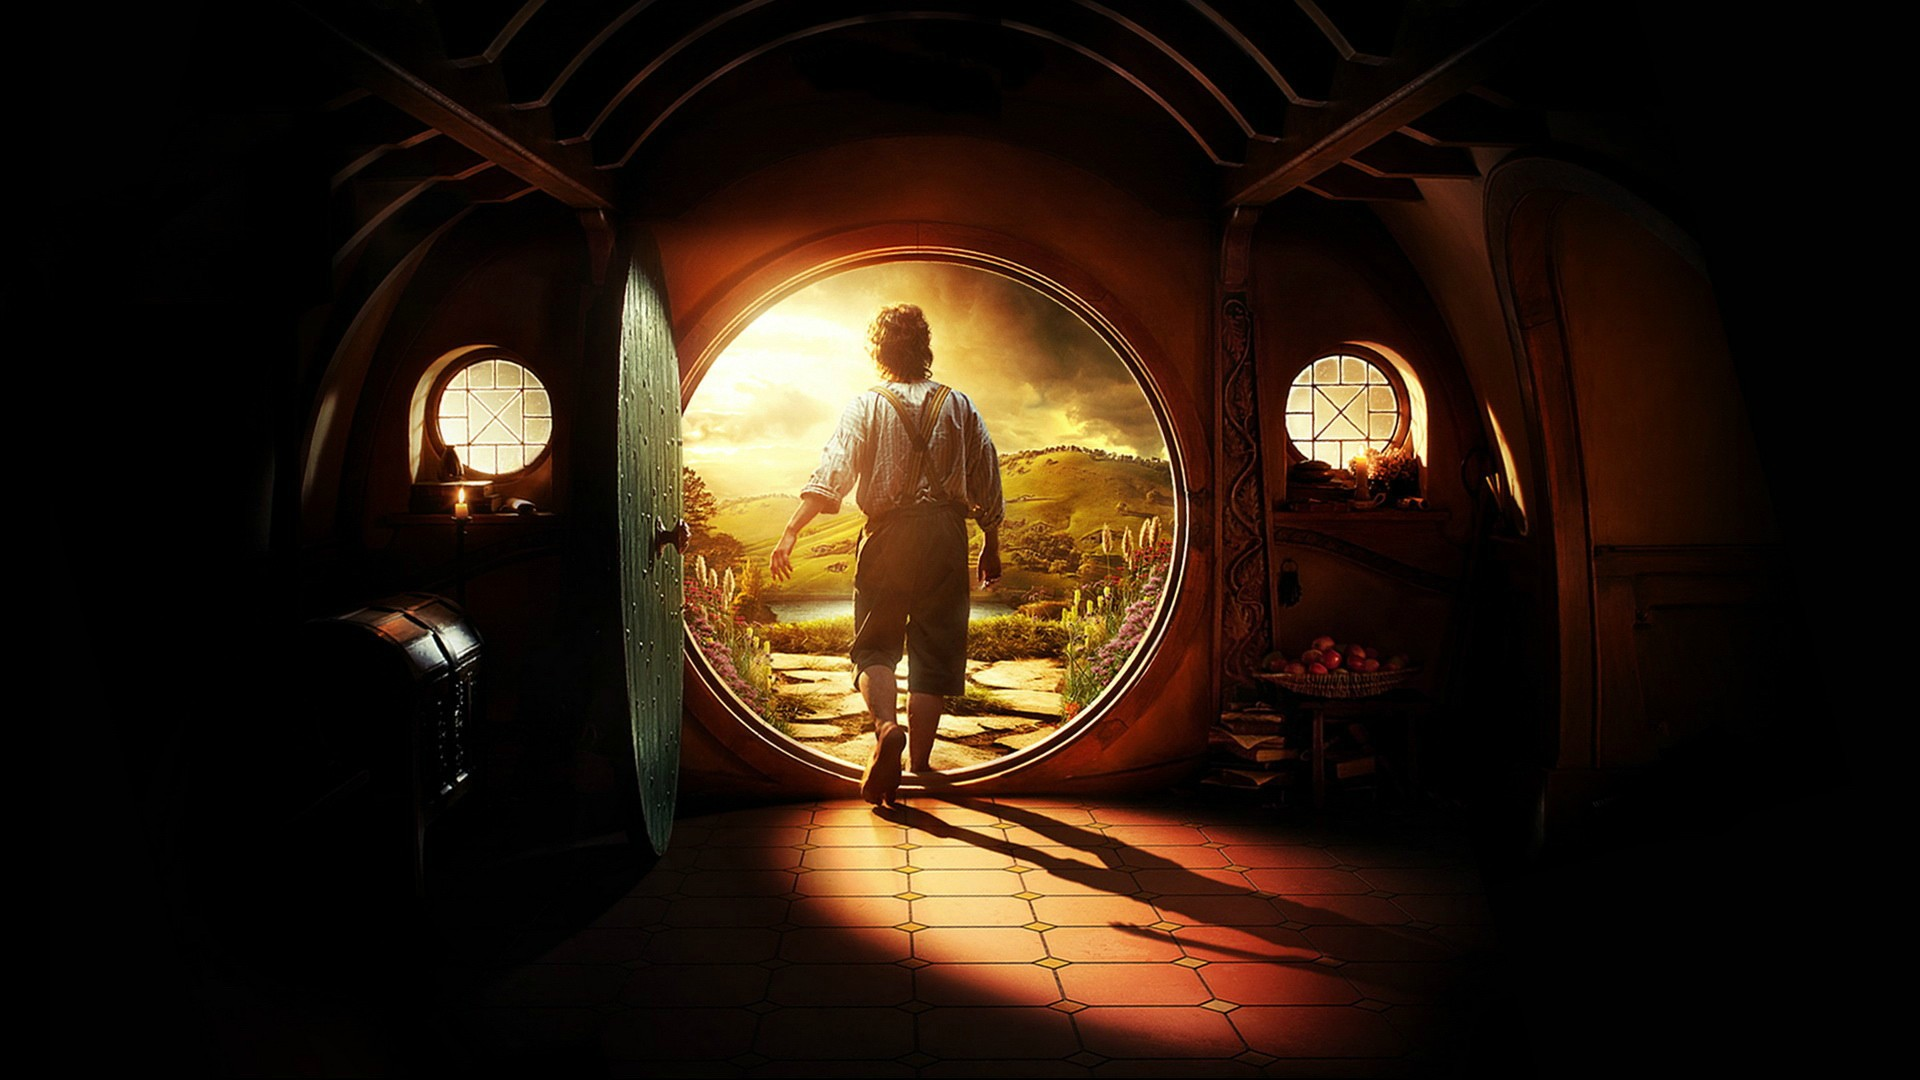 the hobbit: an unexpected journey hd wallpaper | background image